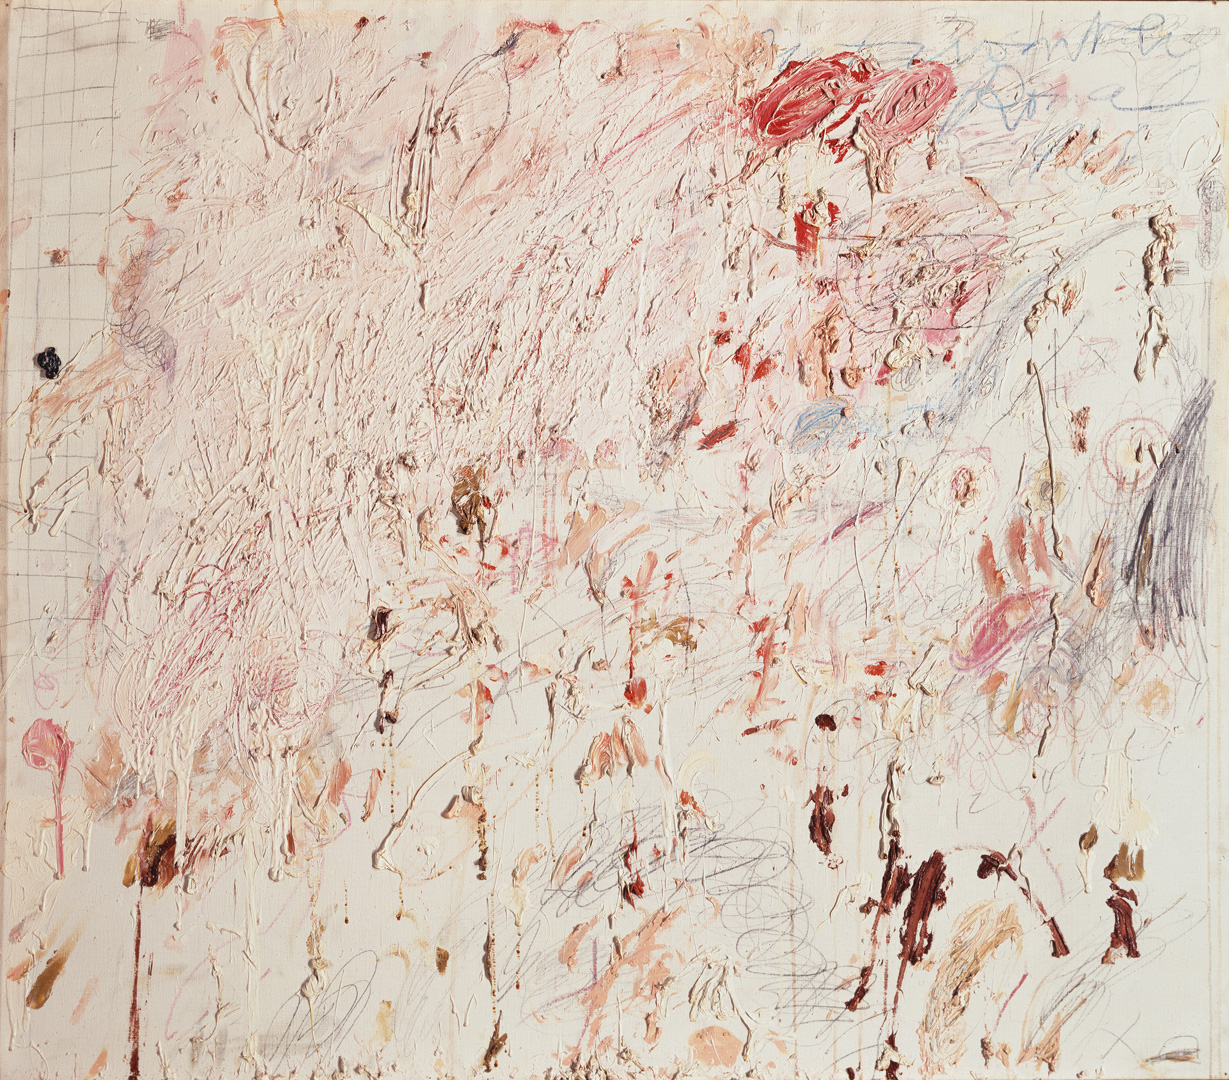 Cy Twombly - Untitled [Rome], 1961, oil paint, wax crayon and lead pencil on canvas